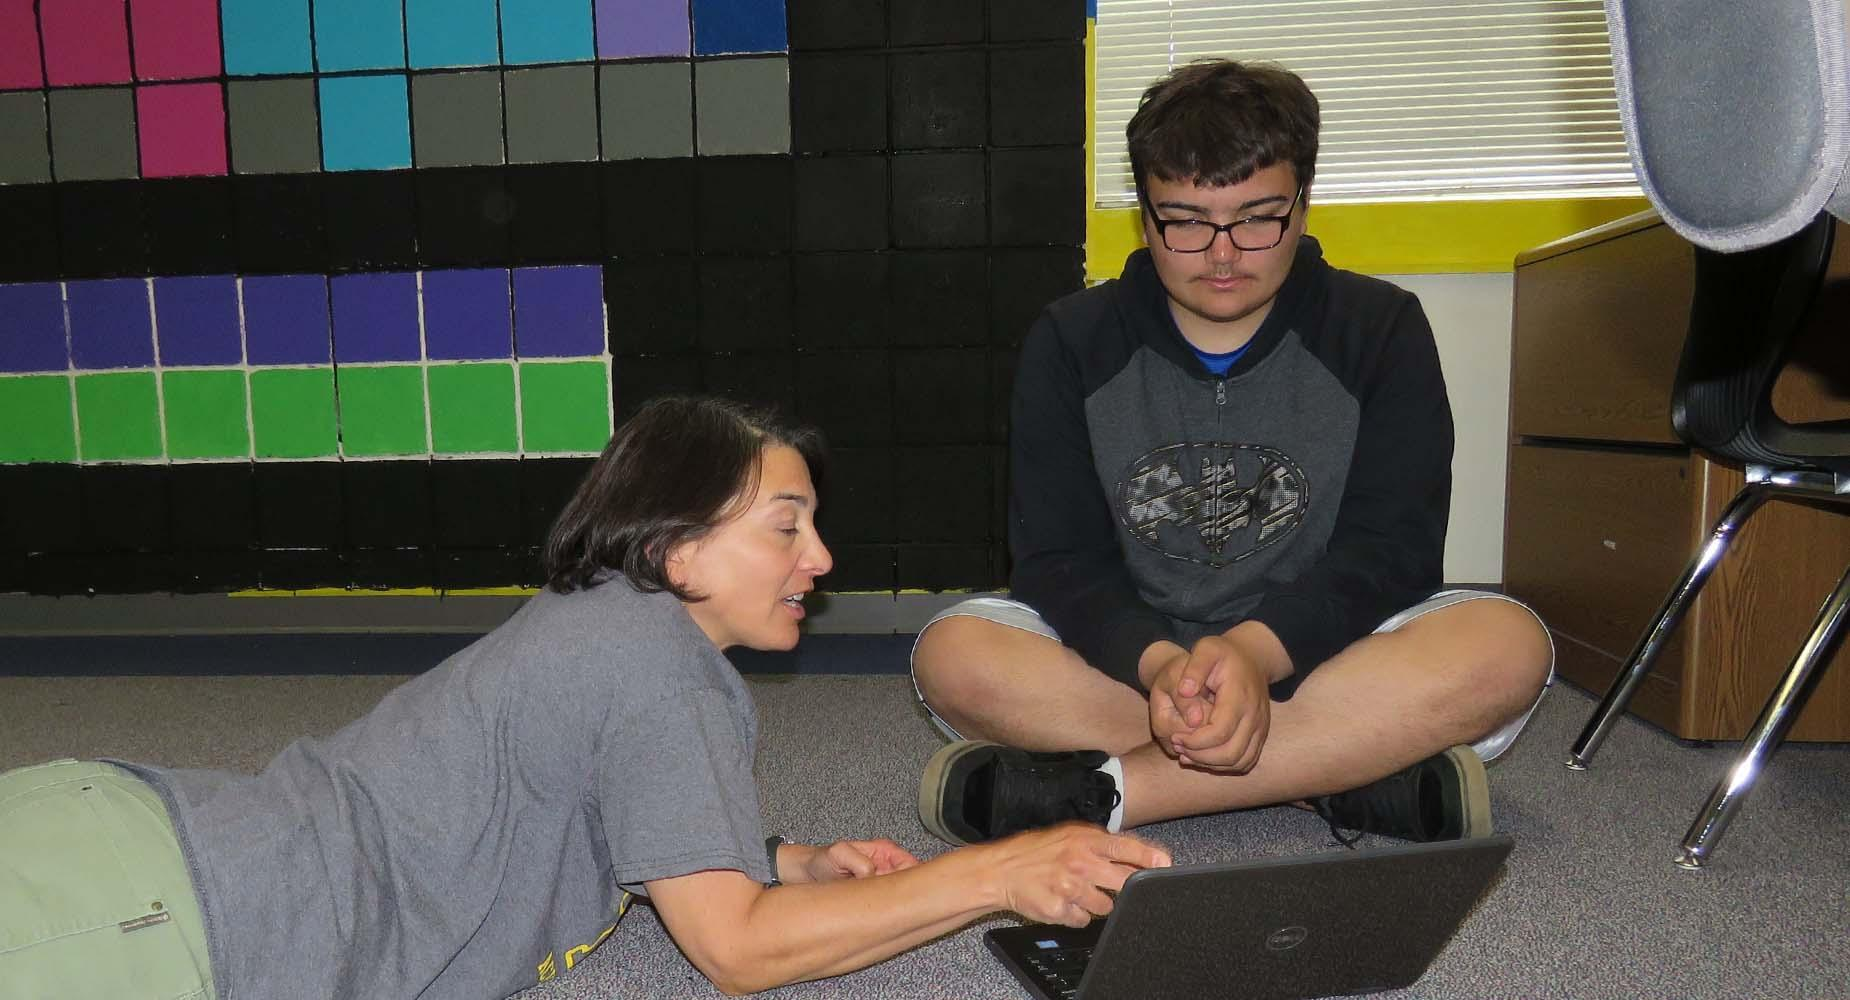 Teacher lays of floor and points to laptop while student watches, cross-legged on the floor.